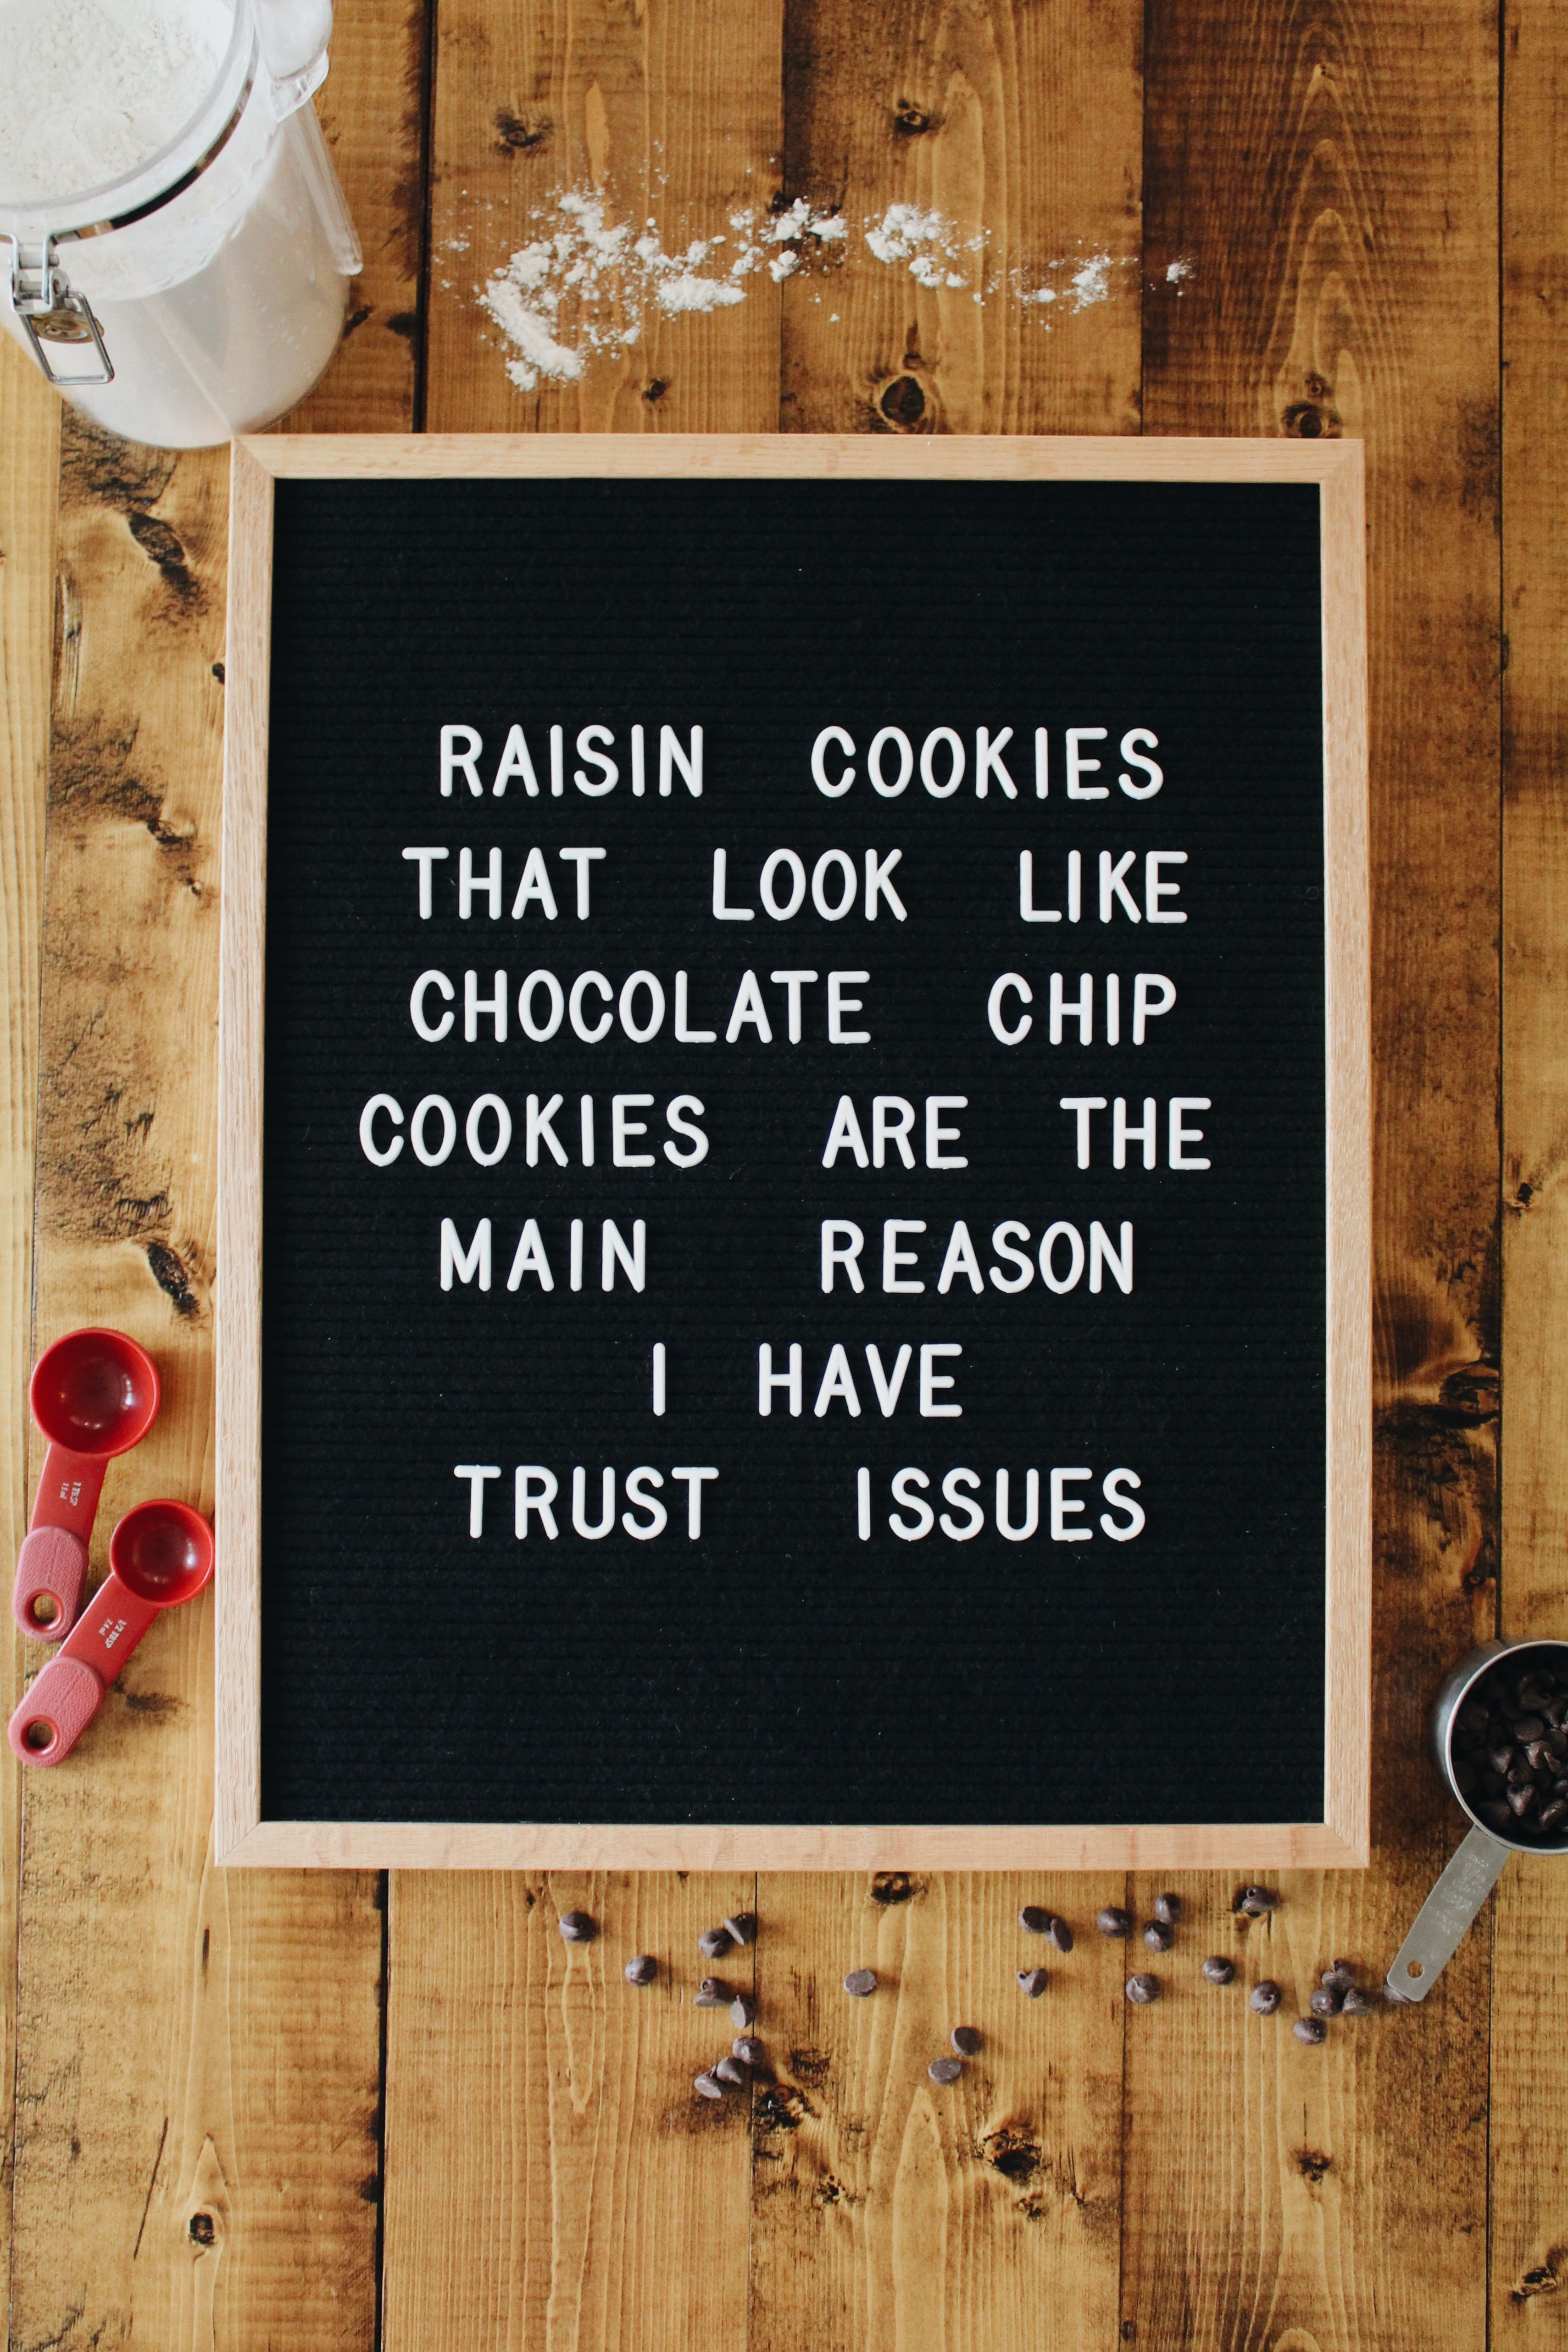 Raisin Cookies That Look Like Chocolate Chip Cookies Are The Main Reason I Have Trust Issues Is That Not The Food Quotes Funny Cookie Quotes Raisin Cookies